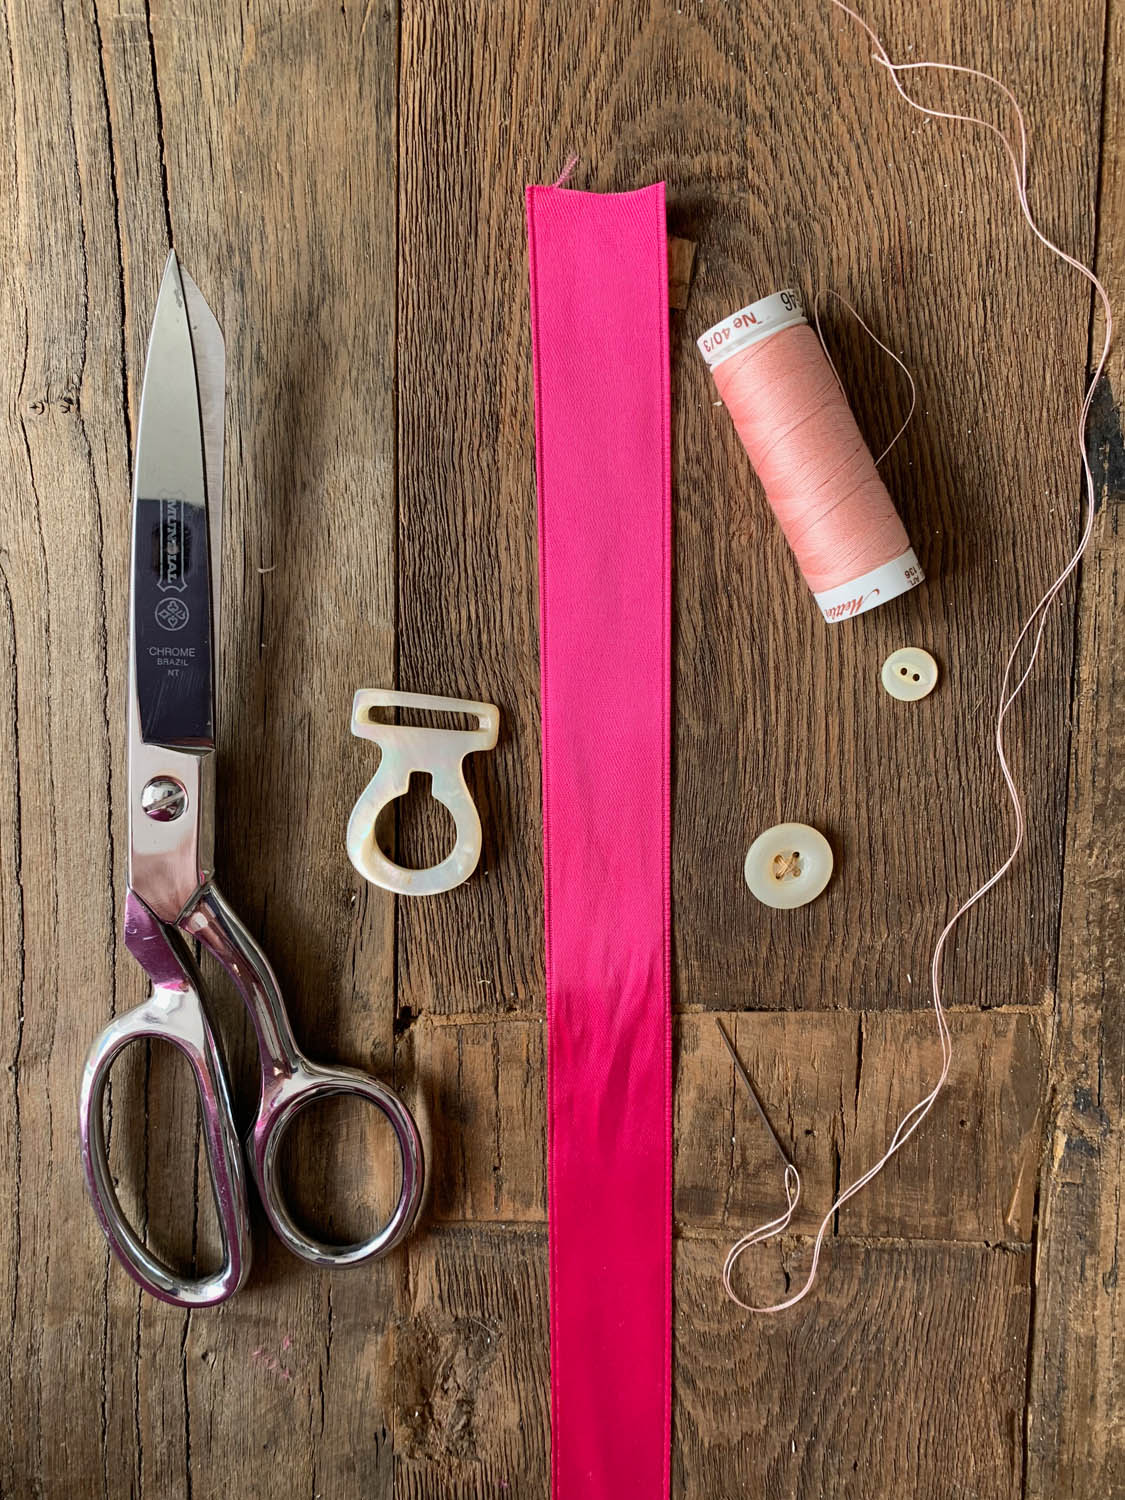 supplies for making handmade bookmarks with ribbon buttons and beads